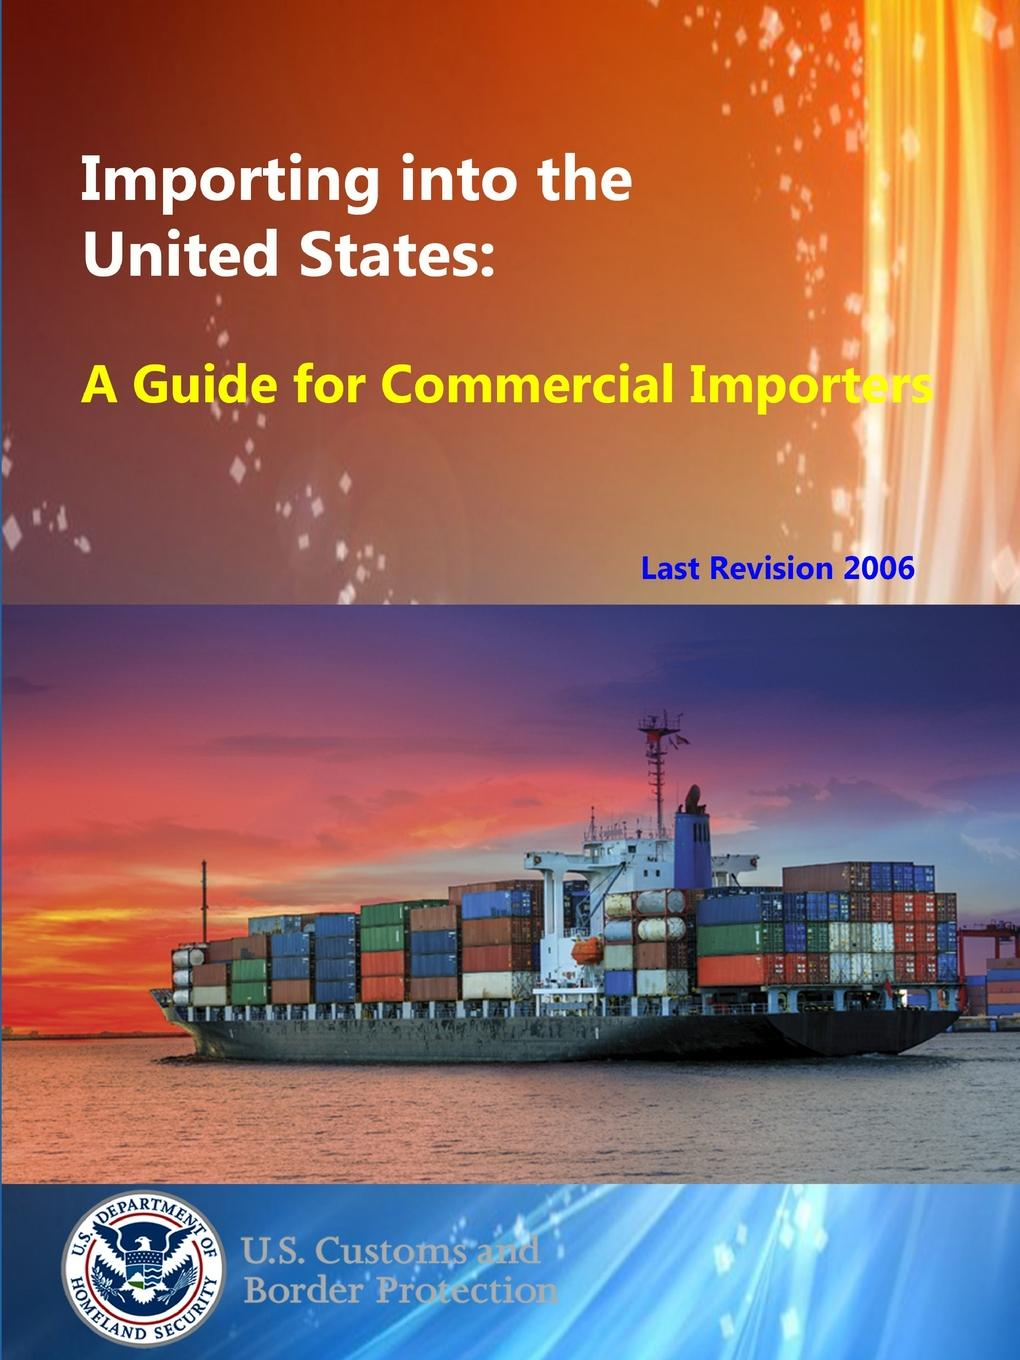 U.S. Customs and Border Protection Importing into the United States. A Guide for Commercial Importers [zob] the united states cmc 3318 186 servo 8923 barab00 w1 import switch